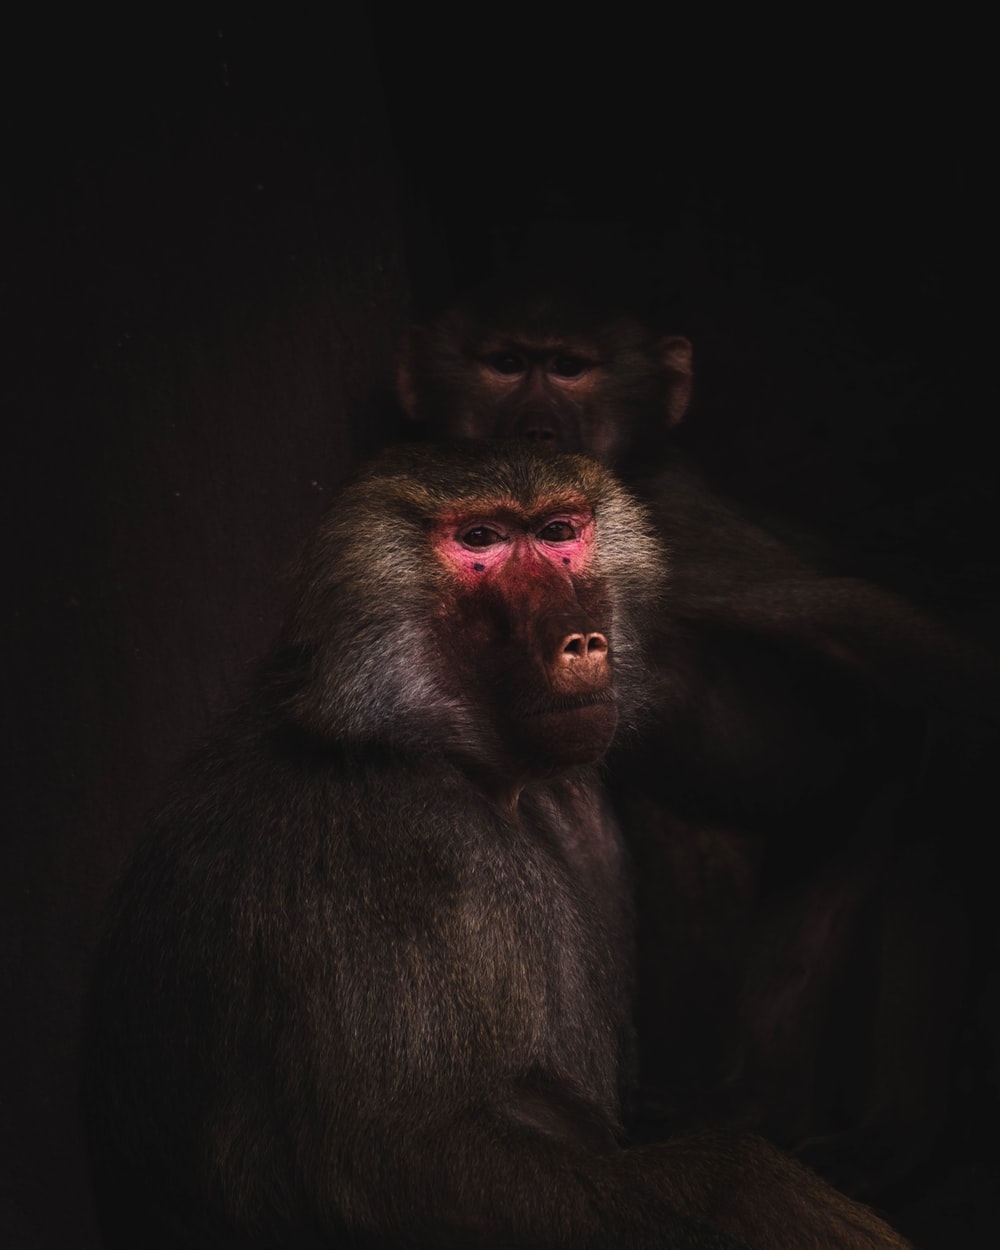 black monkey in close up photography